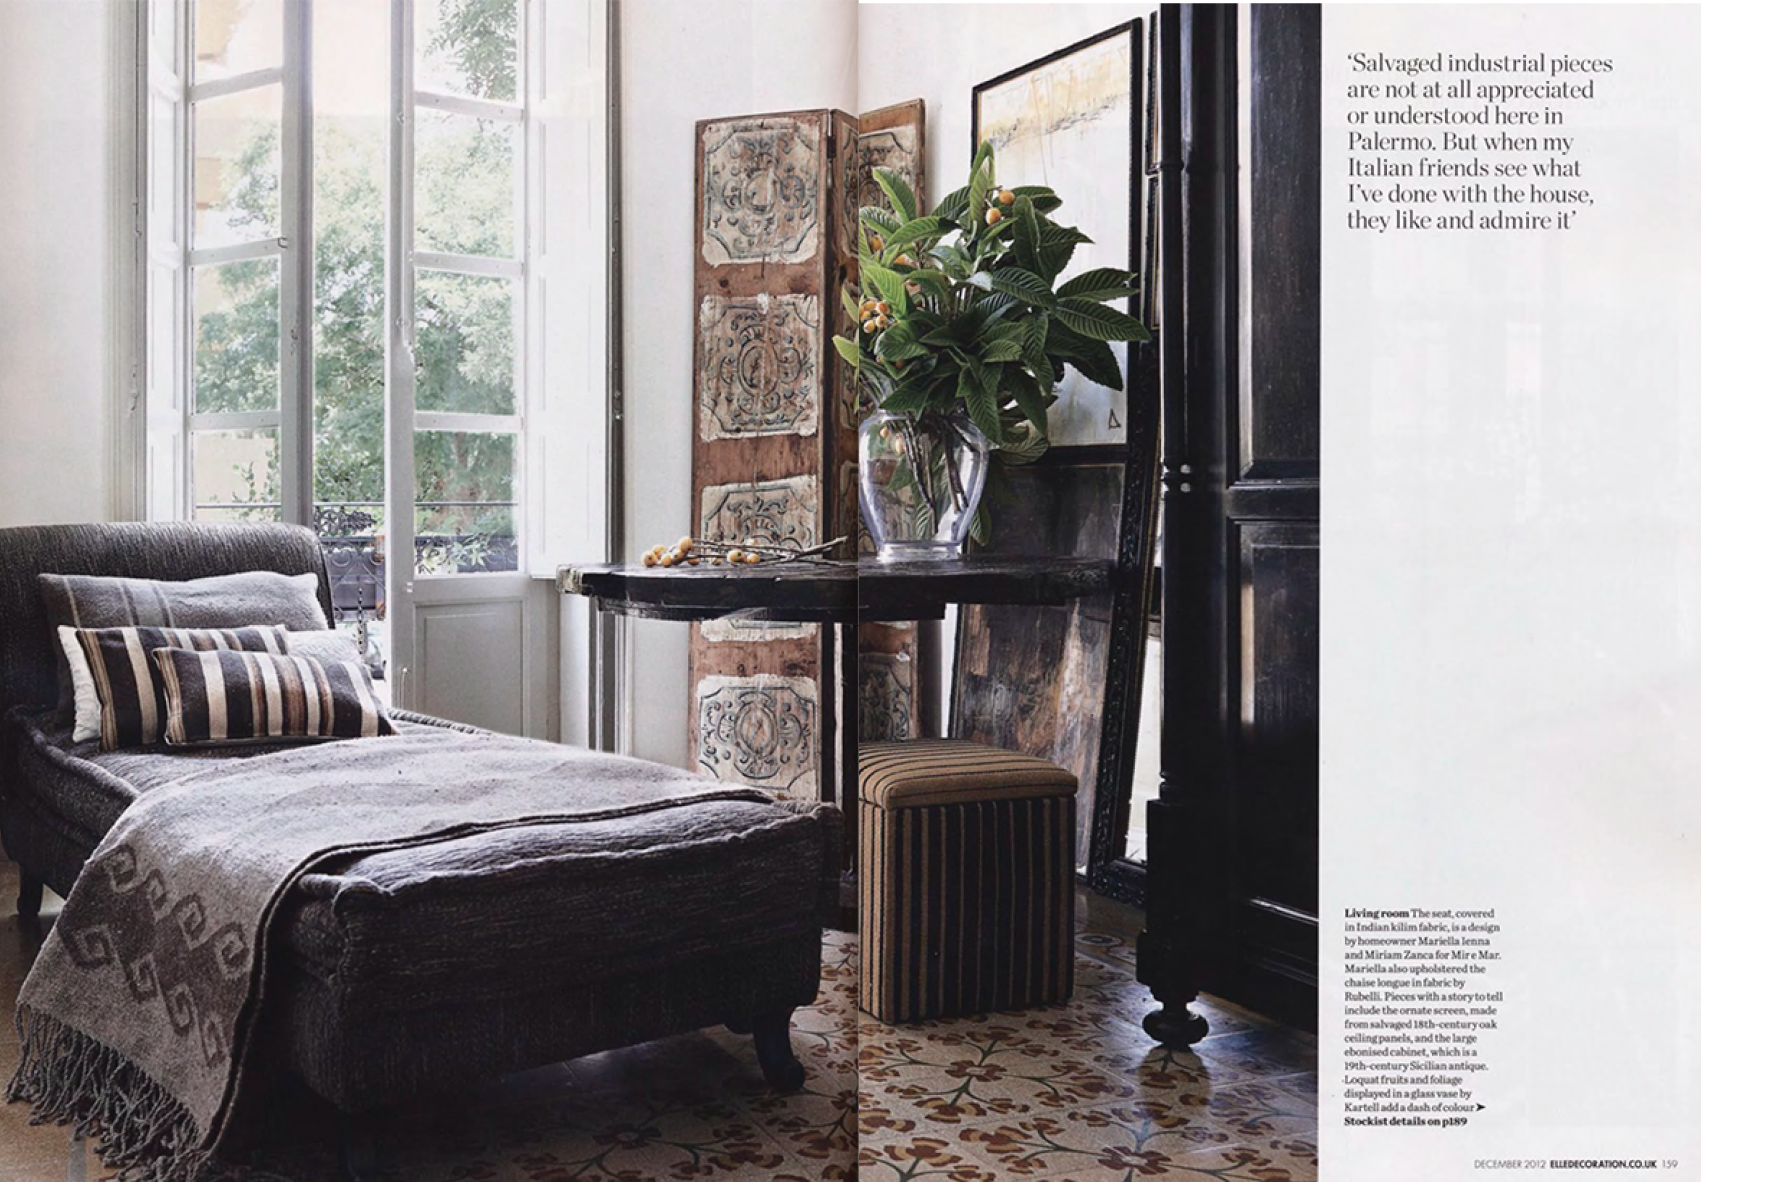 MID_INTERIORS_palermoapt03.png